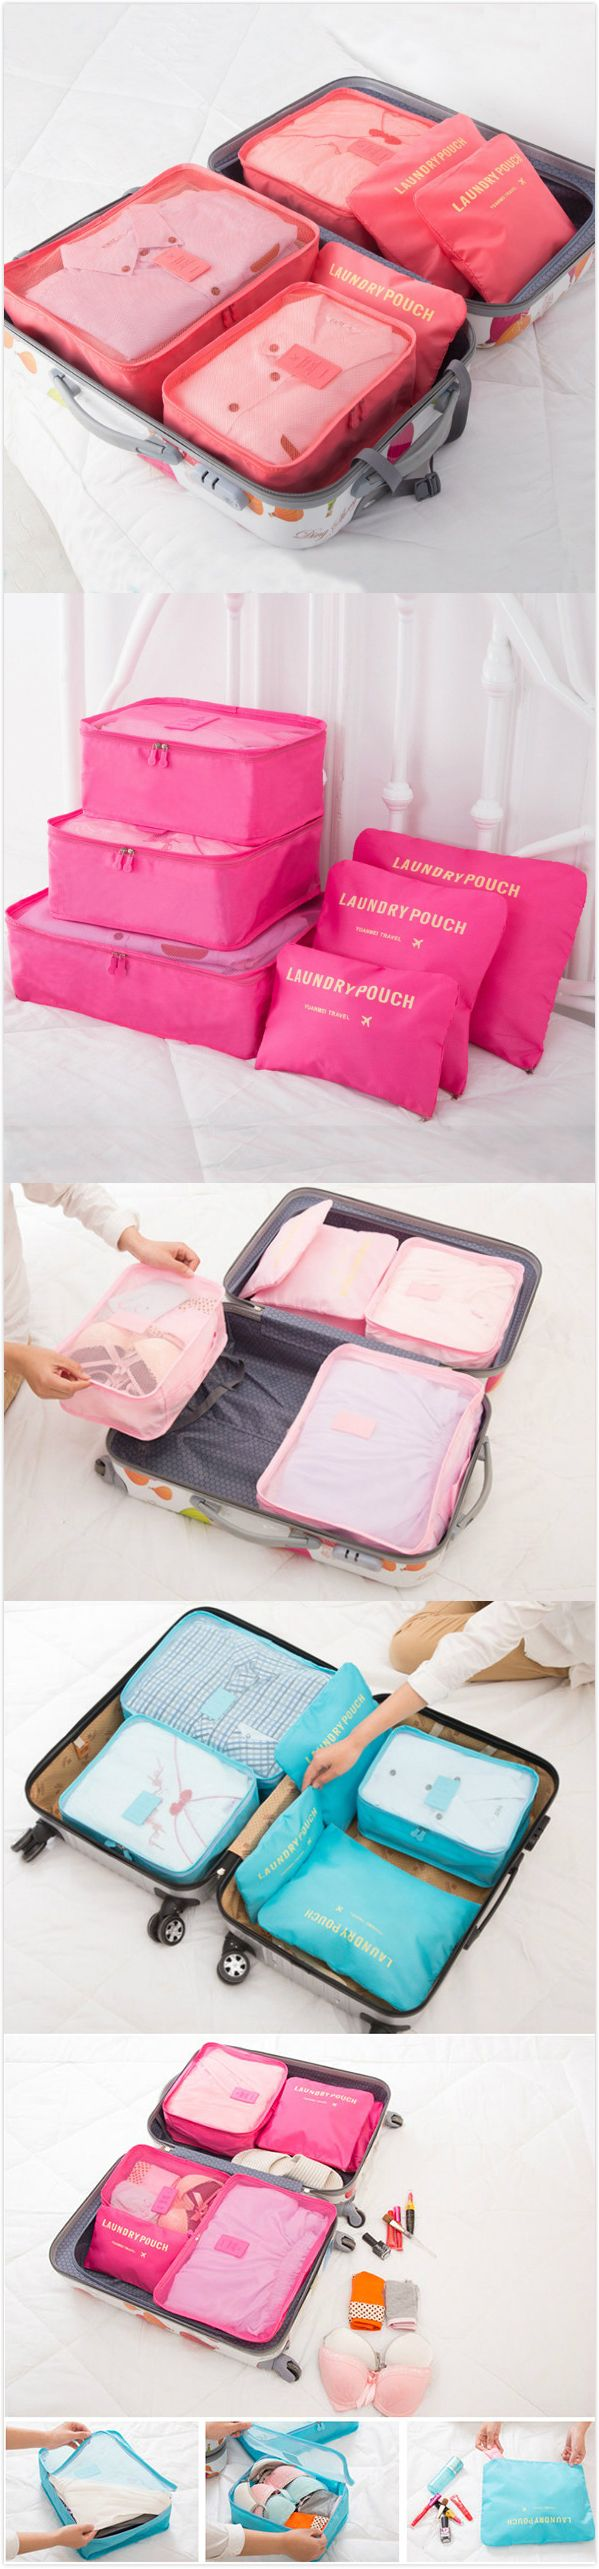 [$ 9.89]    6PCS Waterproof Nylon Cube Travel Storage Bag Clothes Cosmetic Bag Luggage Pouch Bag